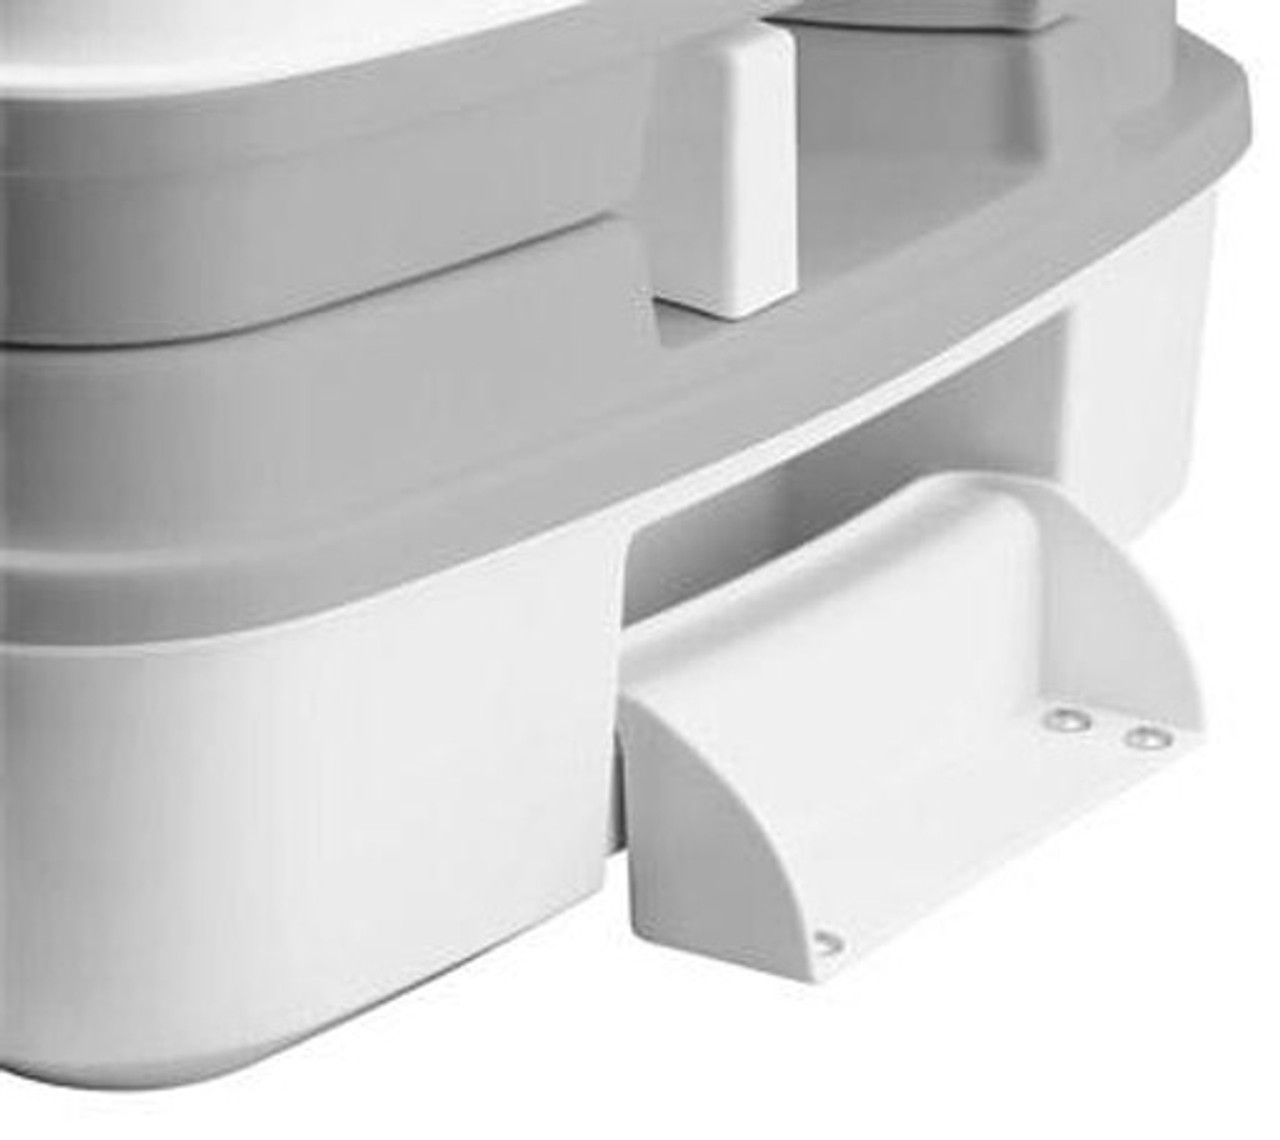 Hold down kit for the 335 toilet